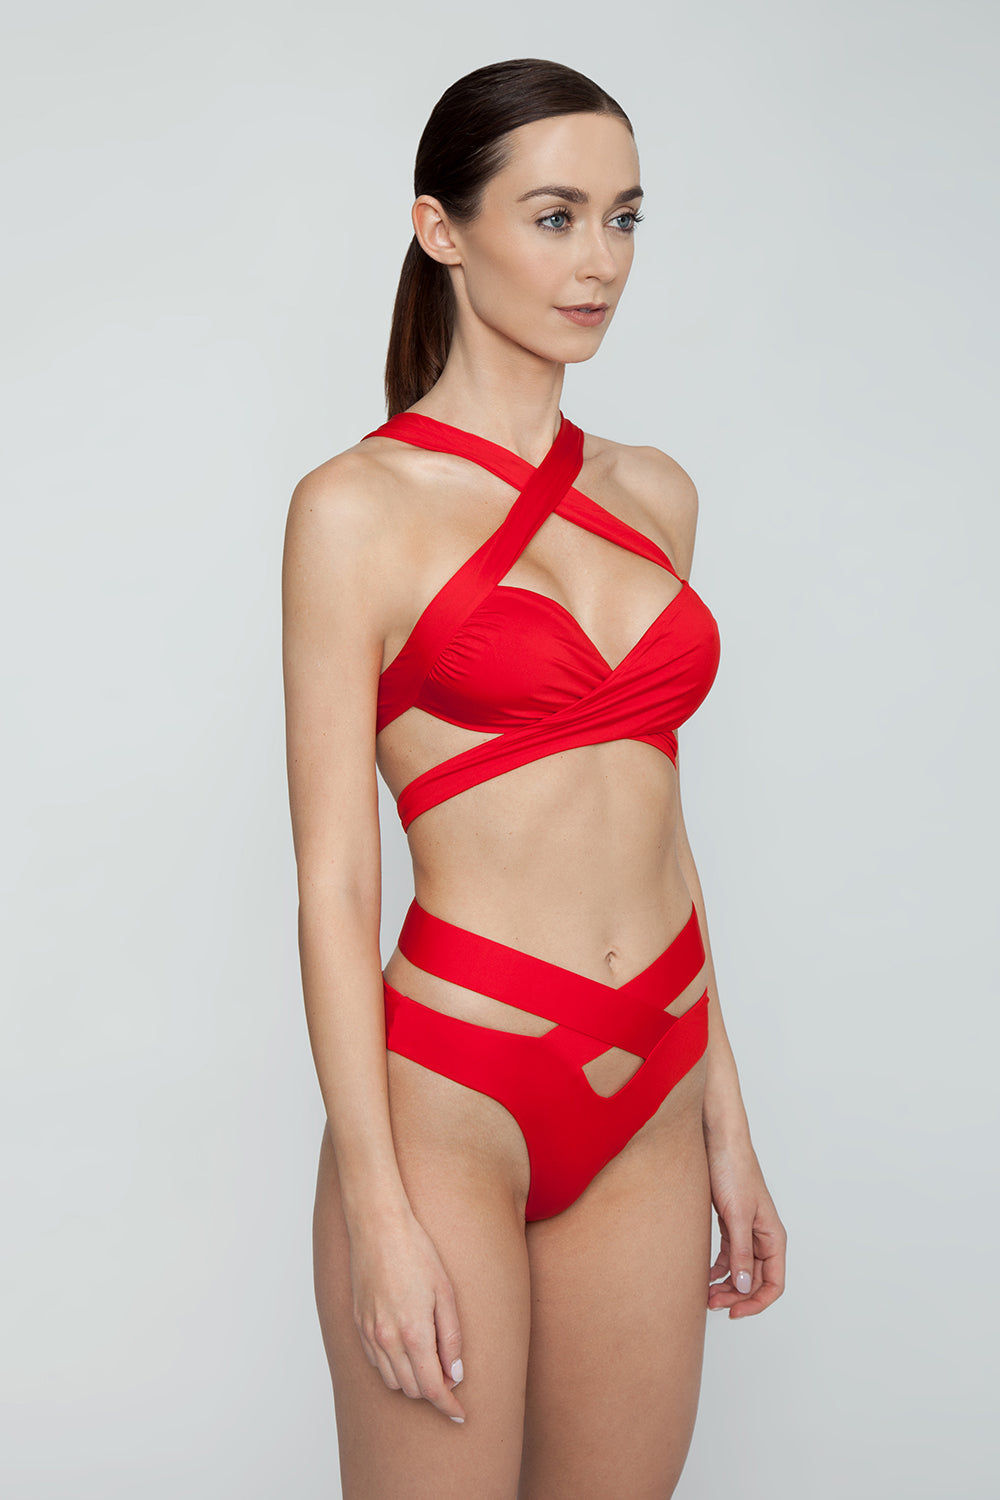 MONICA HANSEN BEACHWEAR Endless Summer Wrap Around Bikini Bottom - Red Bikini Bottom | Red| Monica Hansen Beachwear Endless Summer Wrap Around Bikini Bottom - Red. Forms a diamond cut out in front Criss cross straps  High cut leg  Cheeky coverage  Double fabric on the inside instead of lining Italian fabric 85% Nylon 15% Elastane Manufactured in Italy Hand wash cold.  Dry Flat Side View